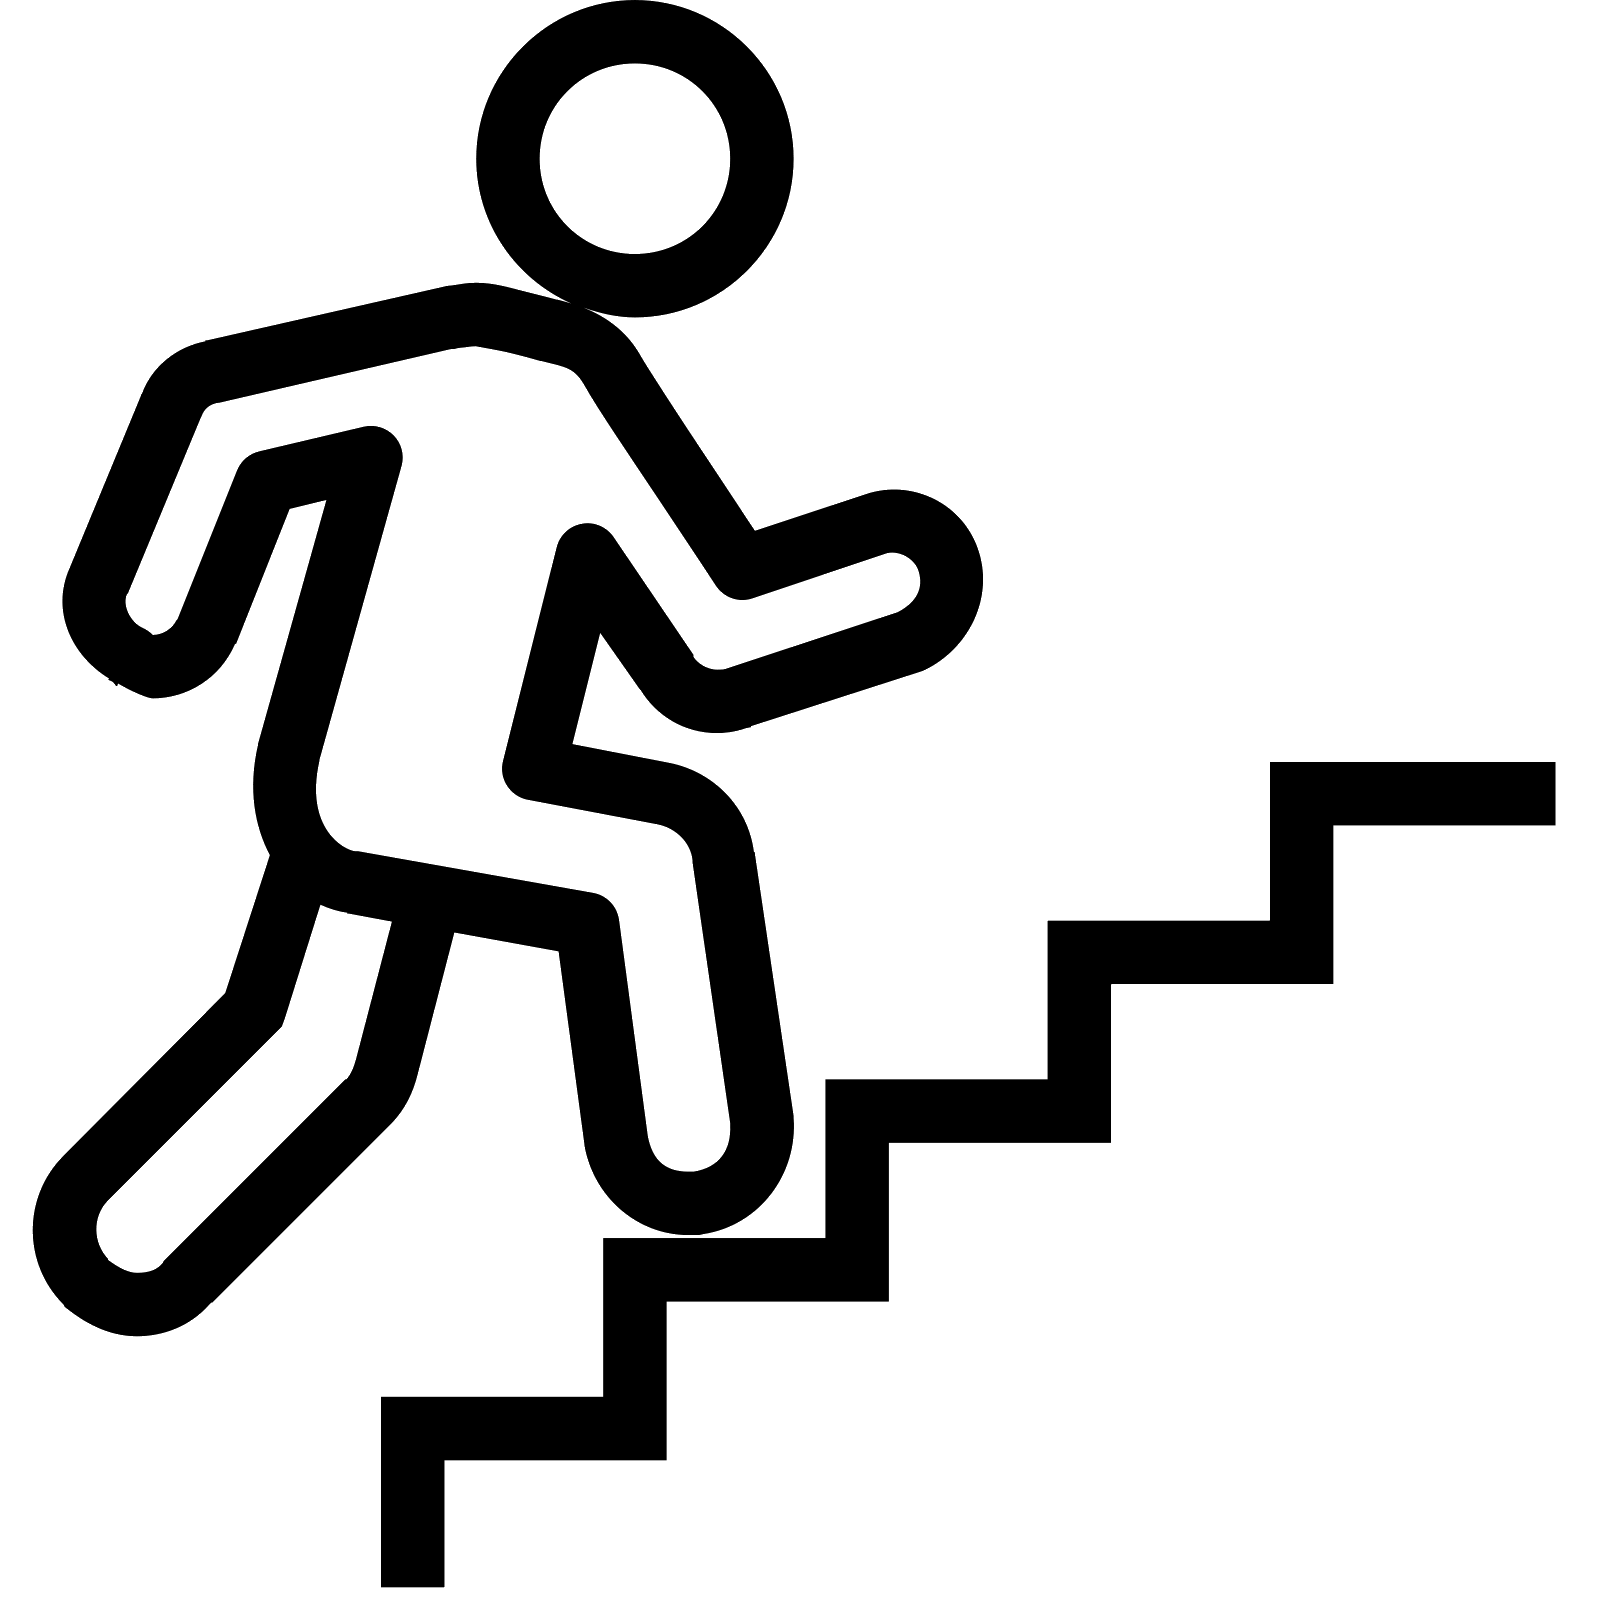 Clipart Walking Staircase Clipart Walking Staircase